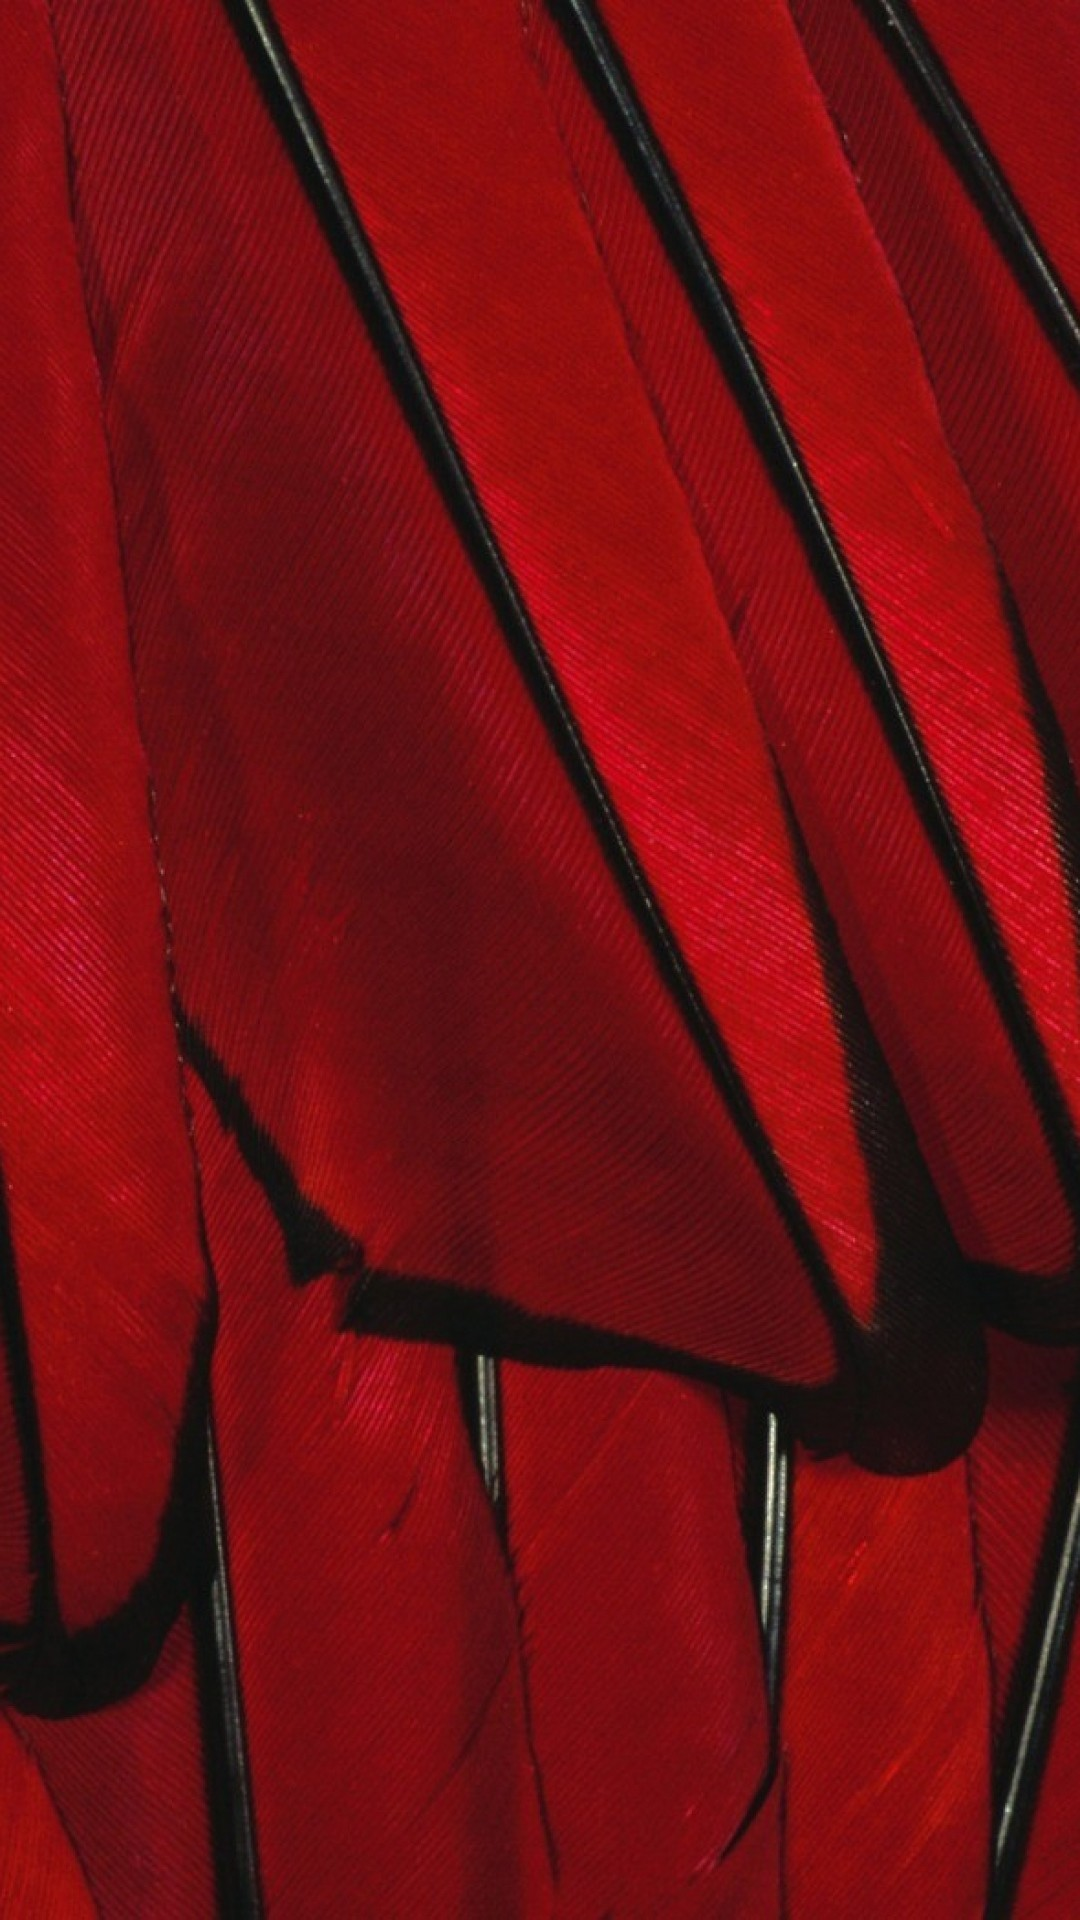 Black Red Paint Color Feather iPhone 6 wallpaper